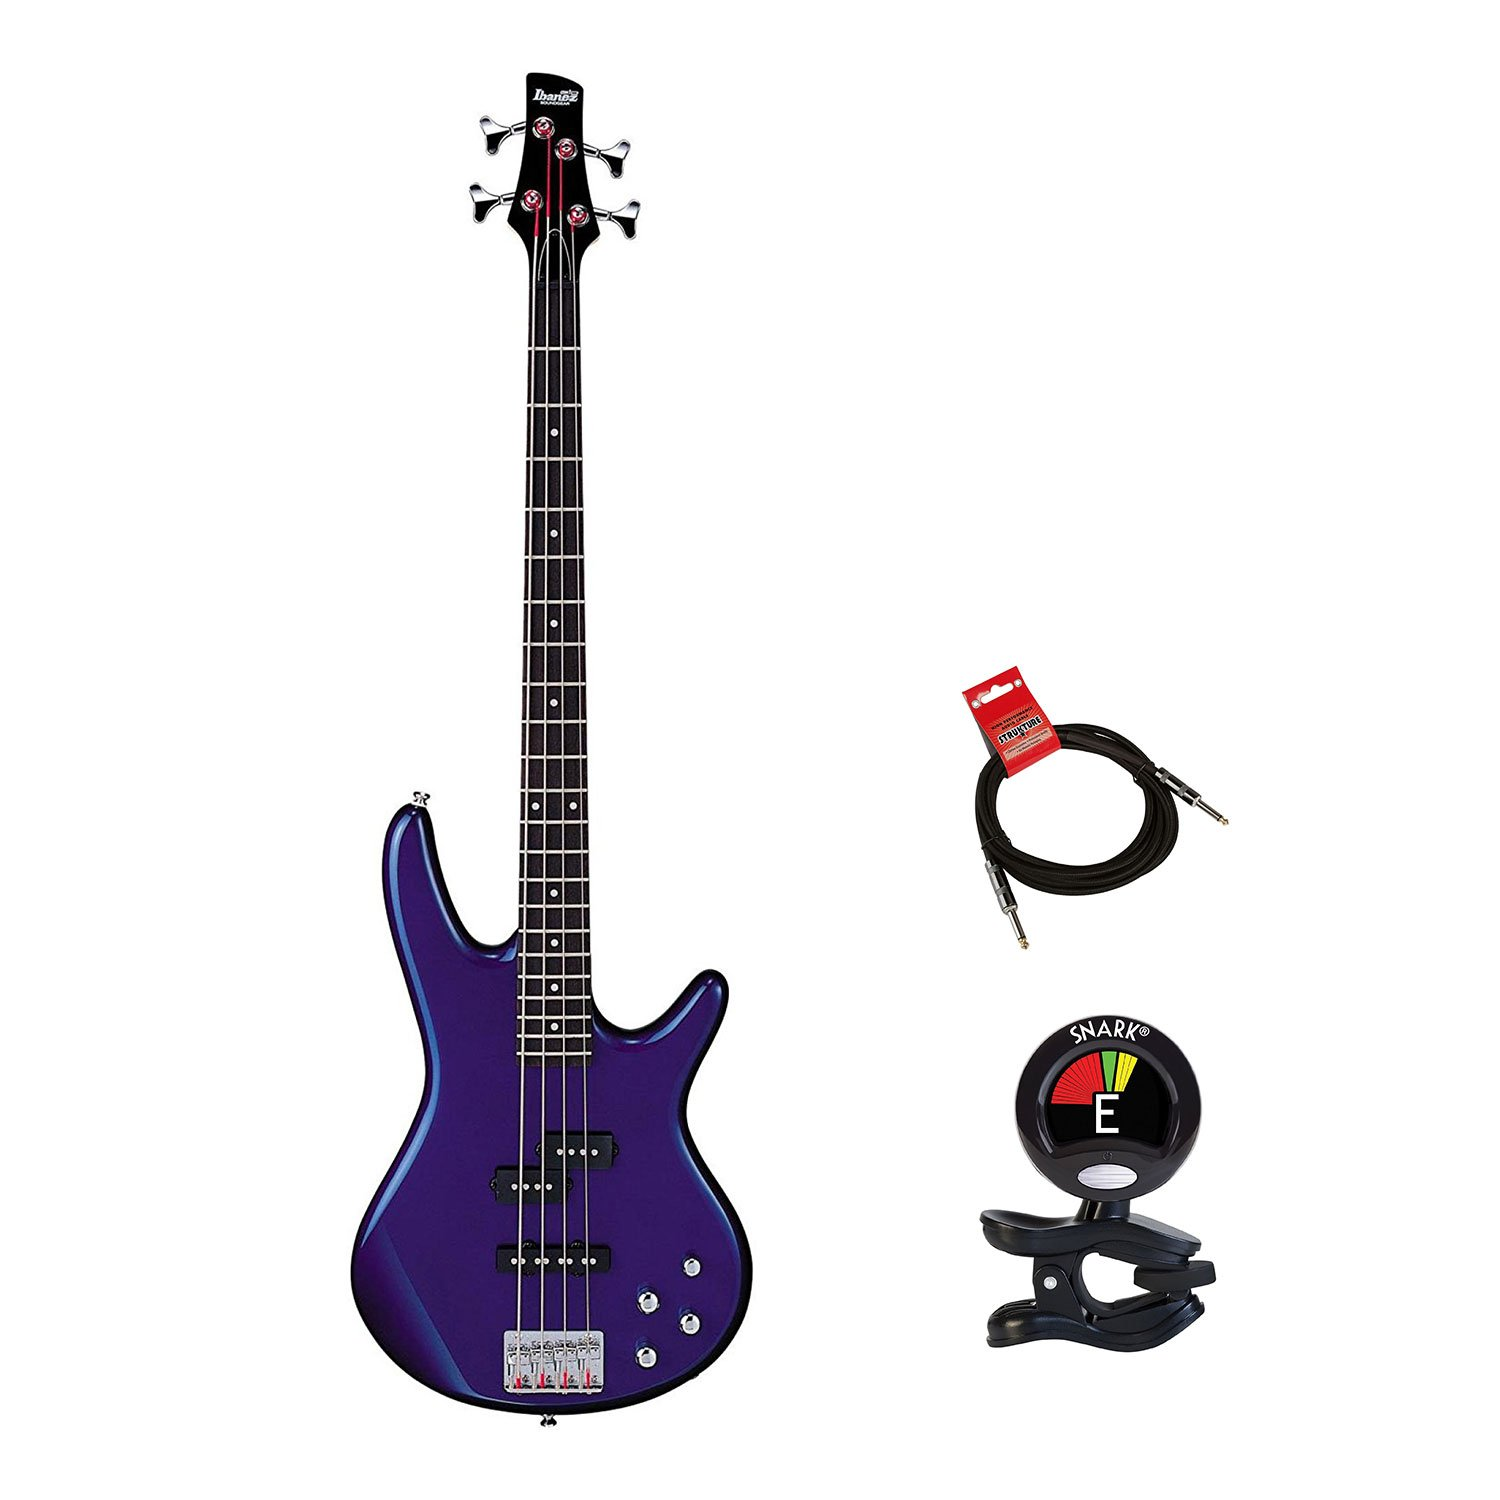 Ibanez GSR200 4 Strings Electric Bass Guitar in Jewel Blue with Clip On Guitar Tuner and Zorro Sounds Guitar Cable